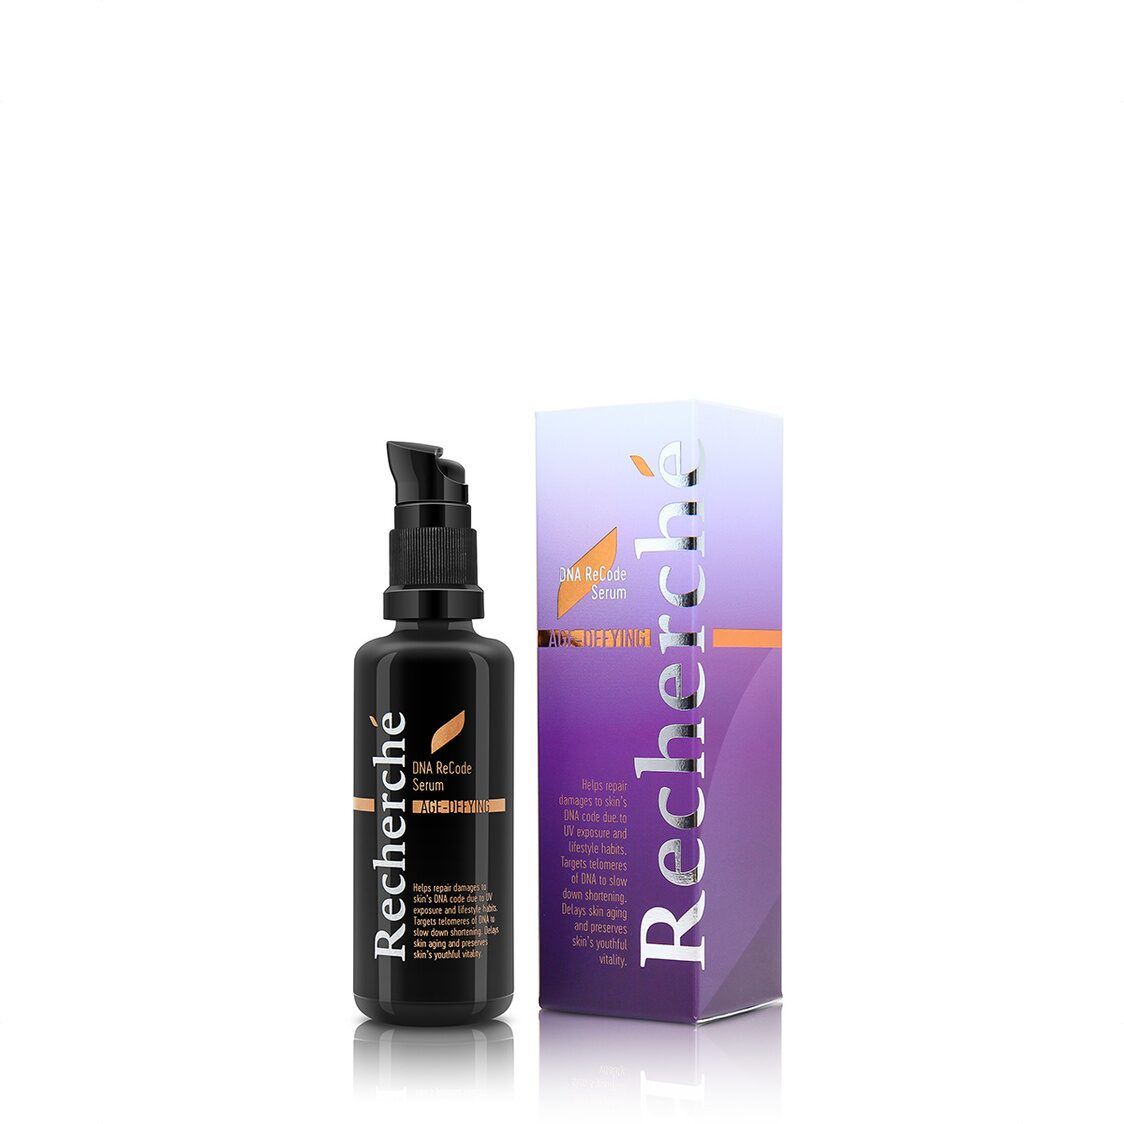 DNA ReCode Serum 50ml